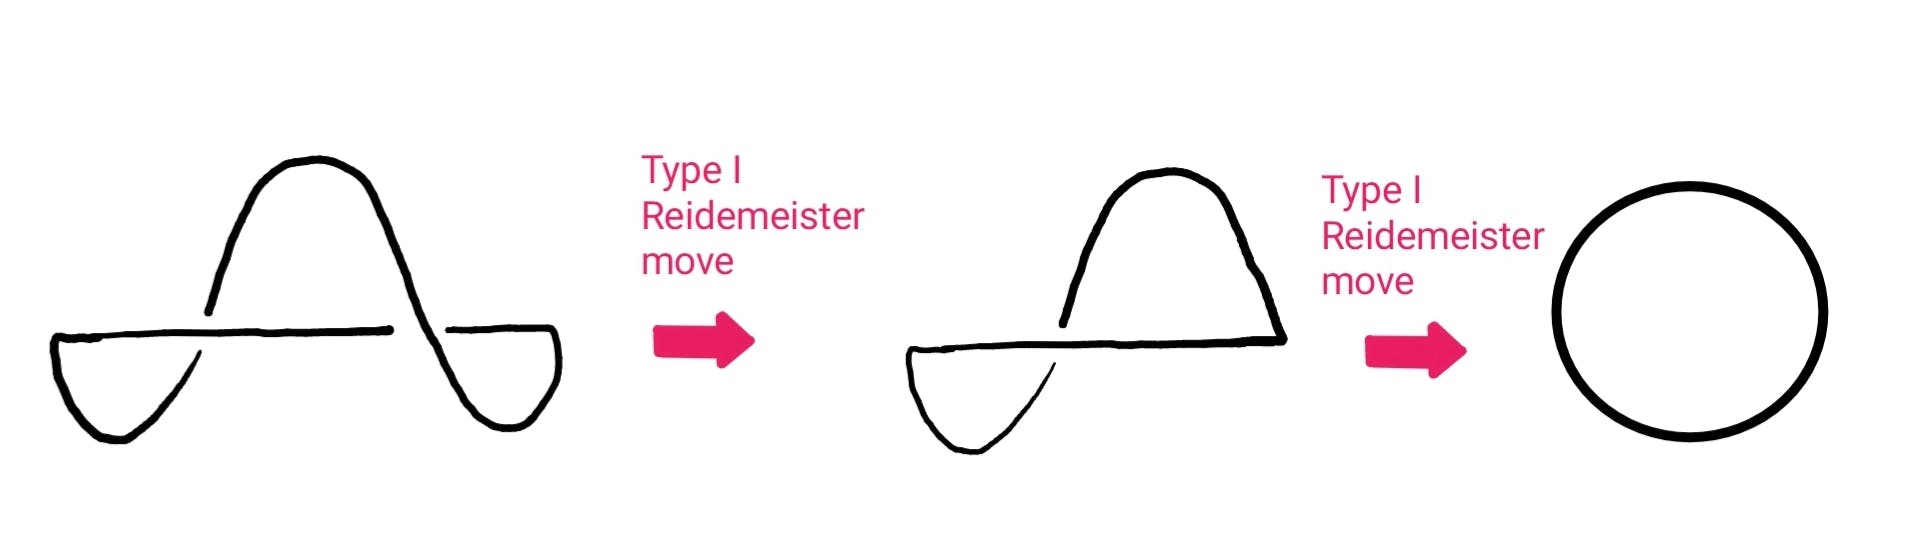 A diagram showing how what appears to be a knot with two crossings can be shown to be the unknot with no crossings, by applying Reidemeister moves